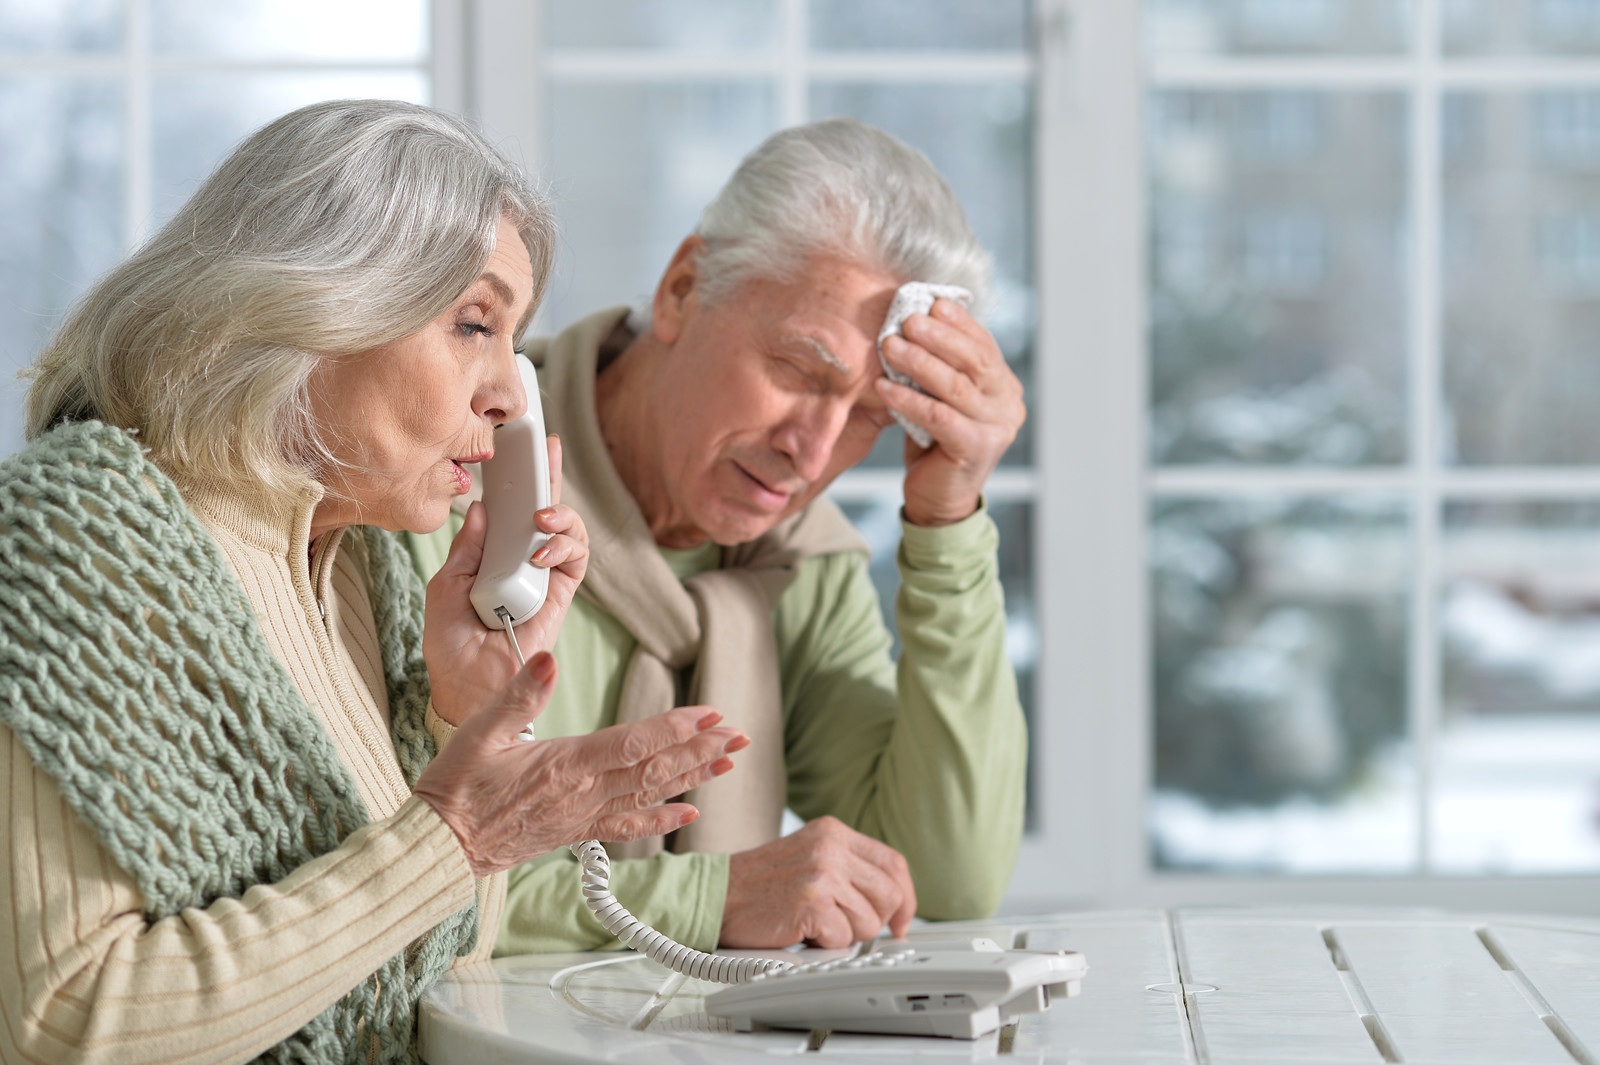 Top 10 Ways For Seniors To Relieve Stress - Senior woman looking distressed on the phone and her husband next to her with his hand to his forehead